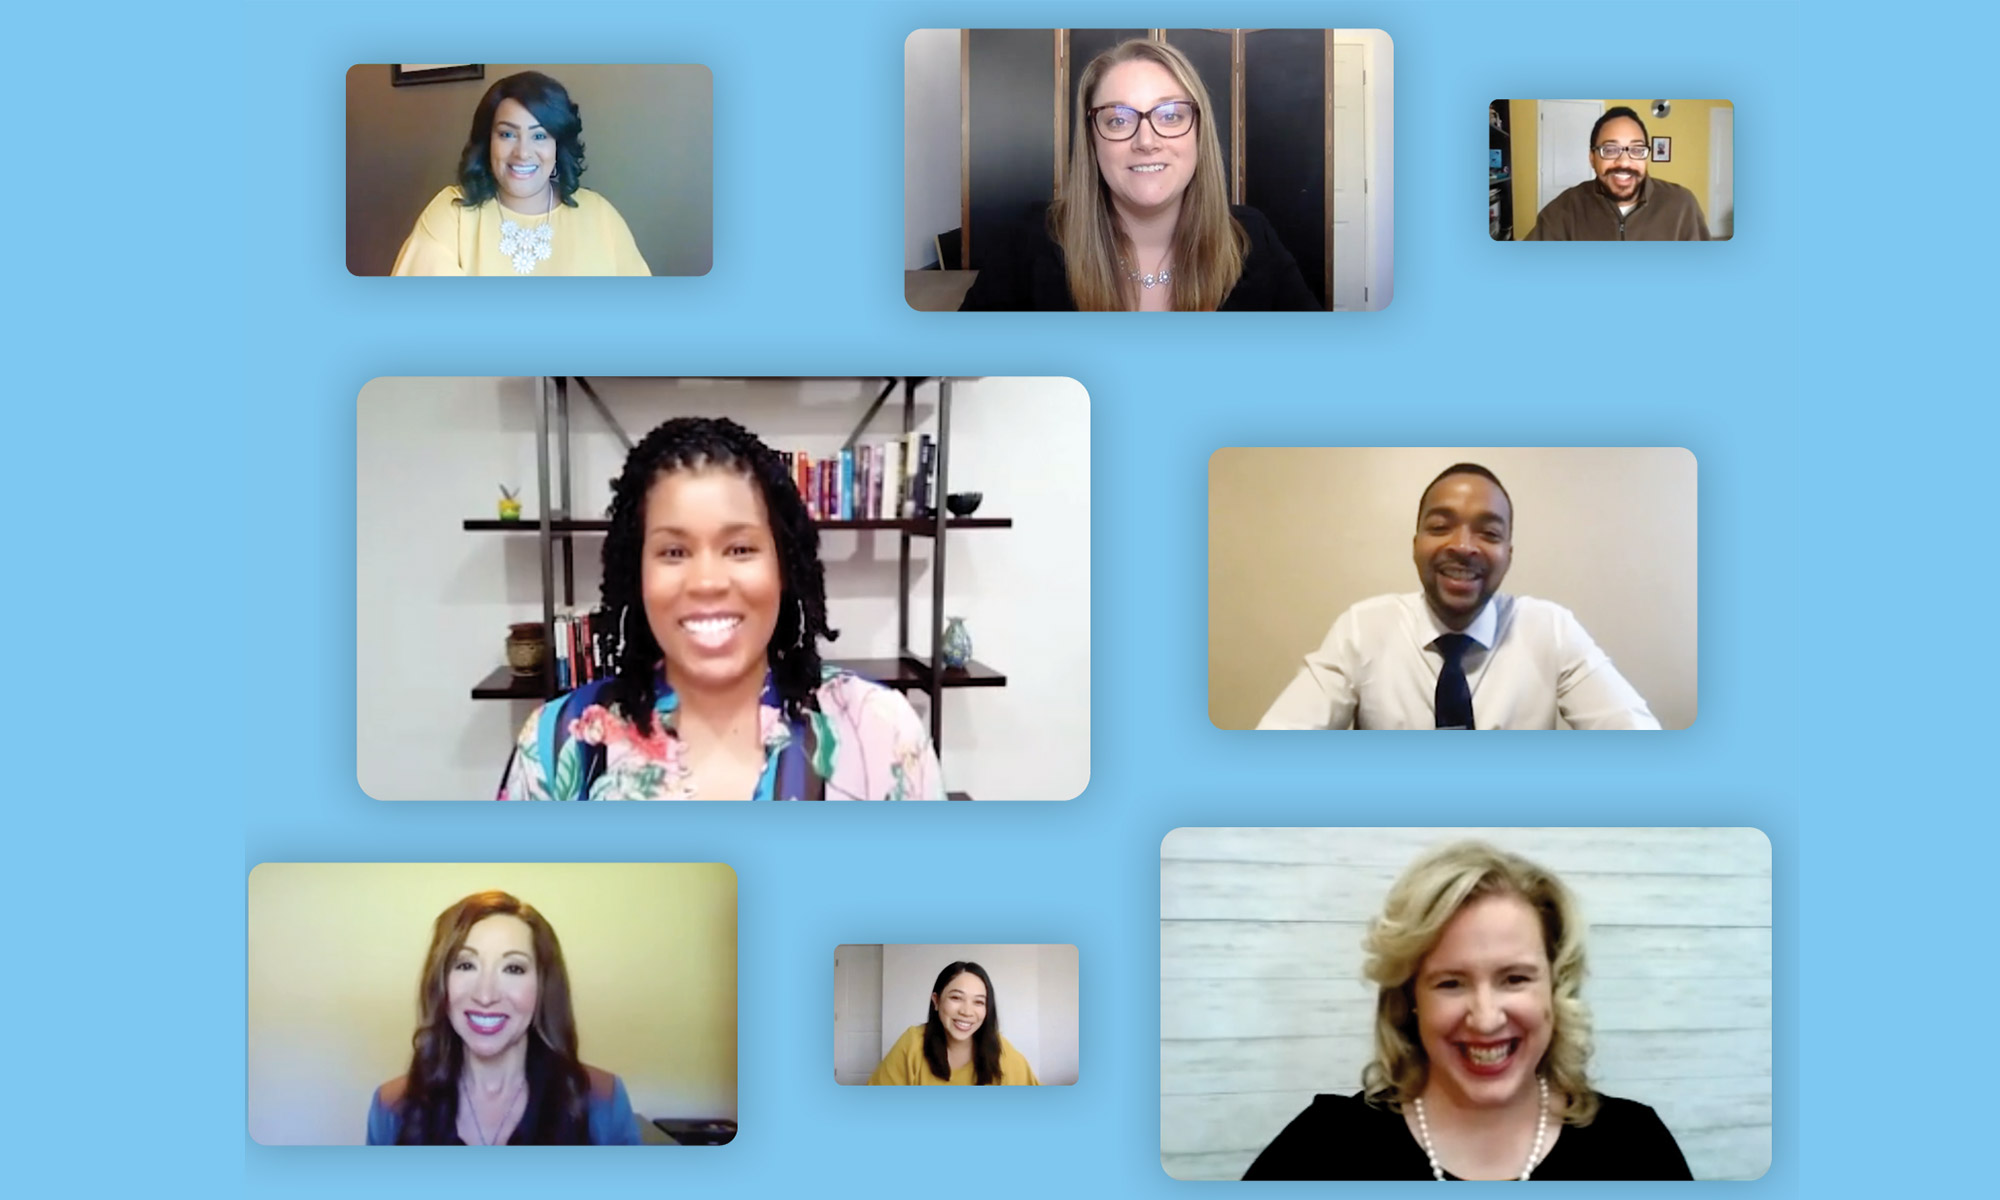 Several video calls with teachers on a field of blue.